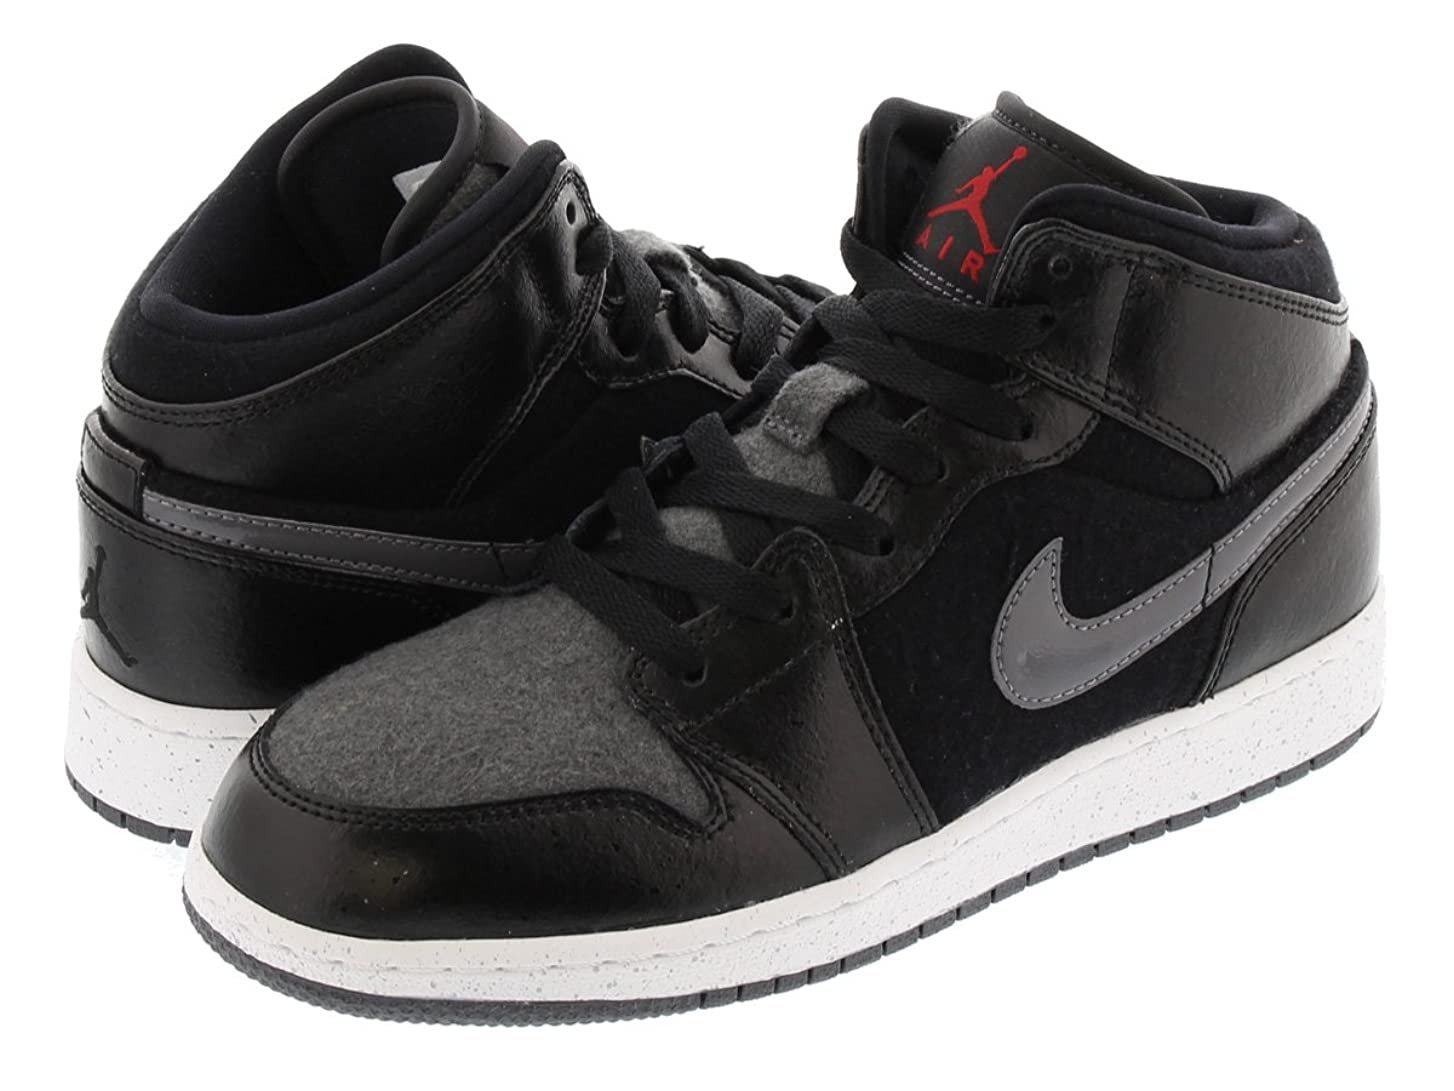 品断言する危険な[ナイキ] AIR JORDAN 1 MID PREMIUM BG BLACK/DARK GREY/WHITE/GYM RED [並行輸入品]